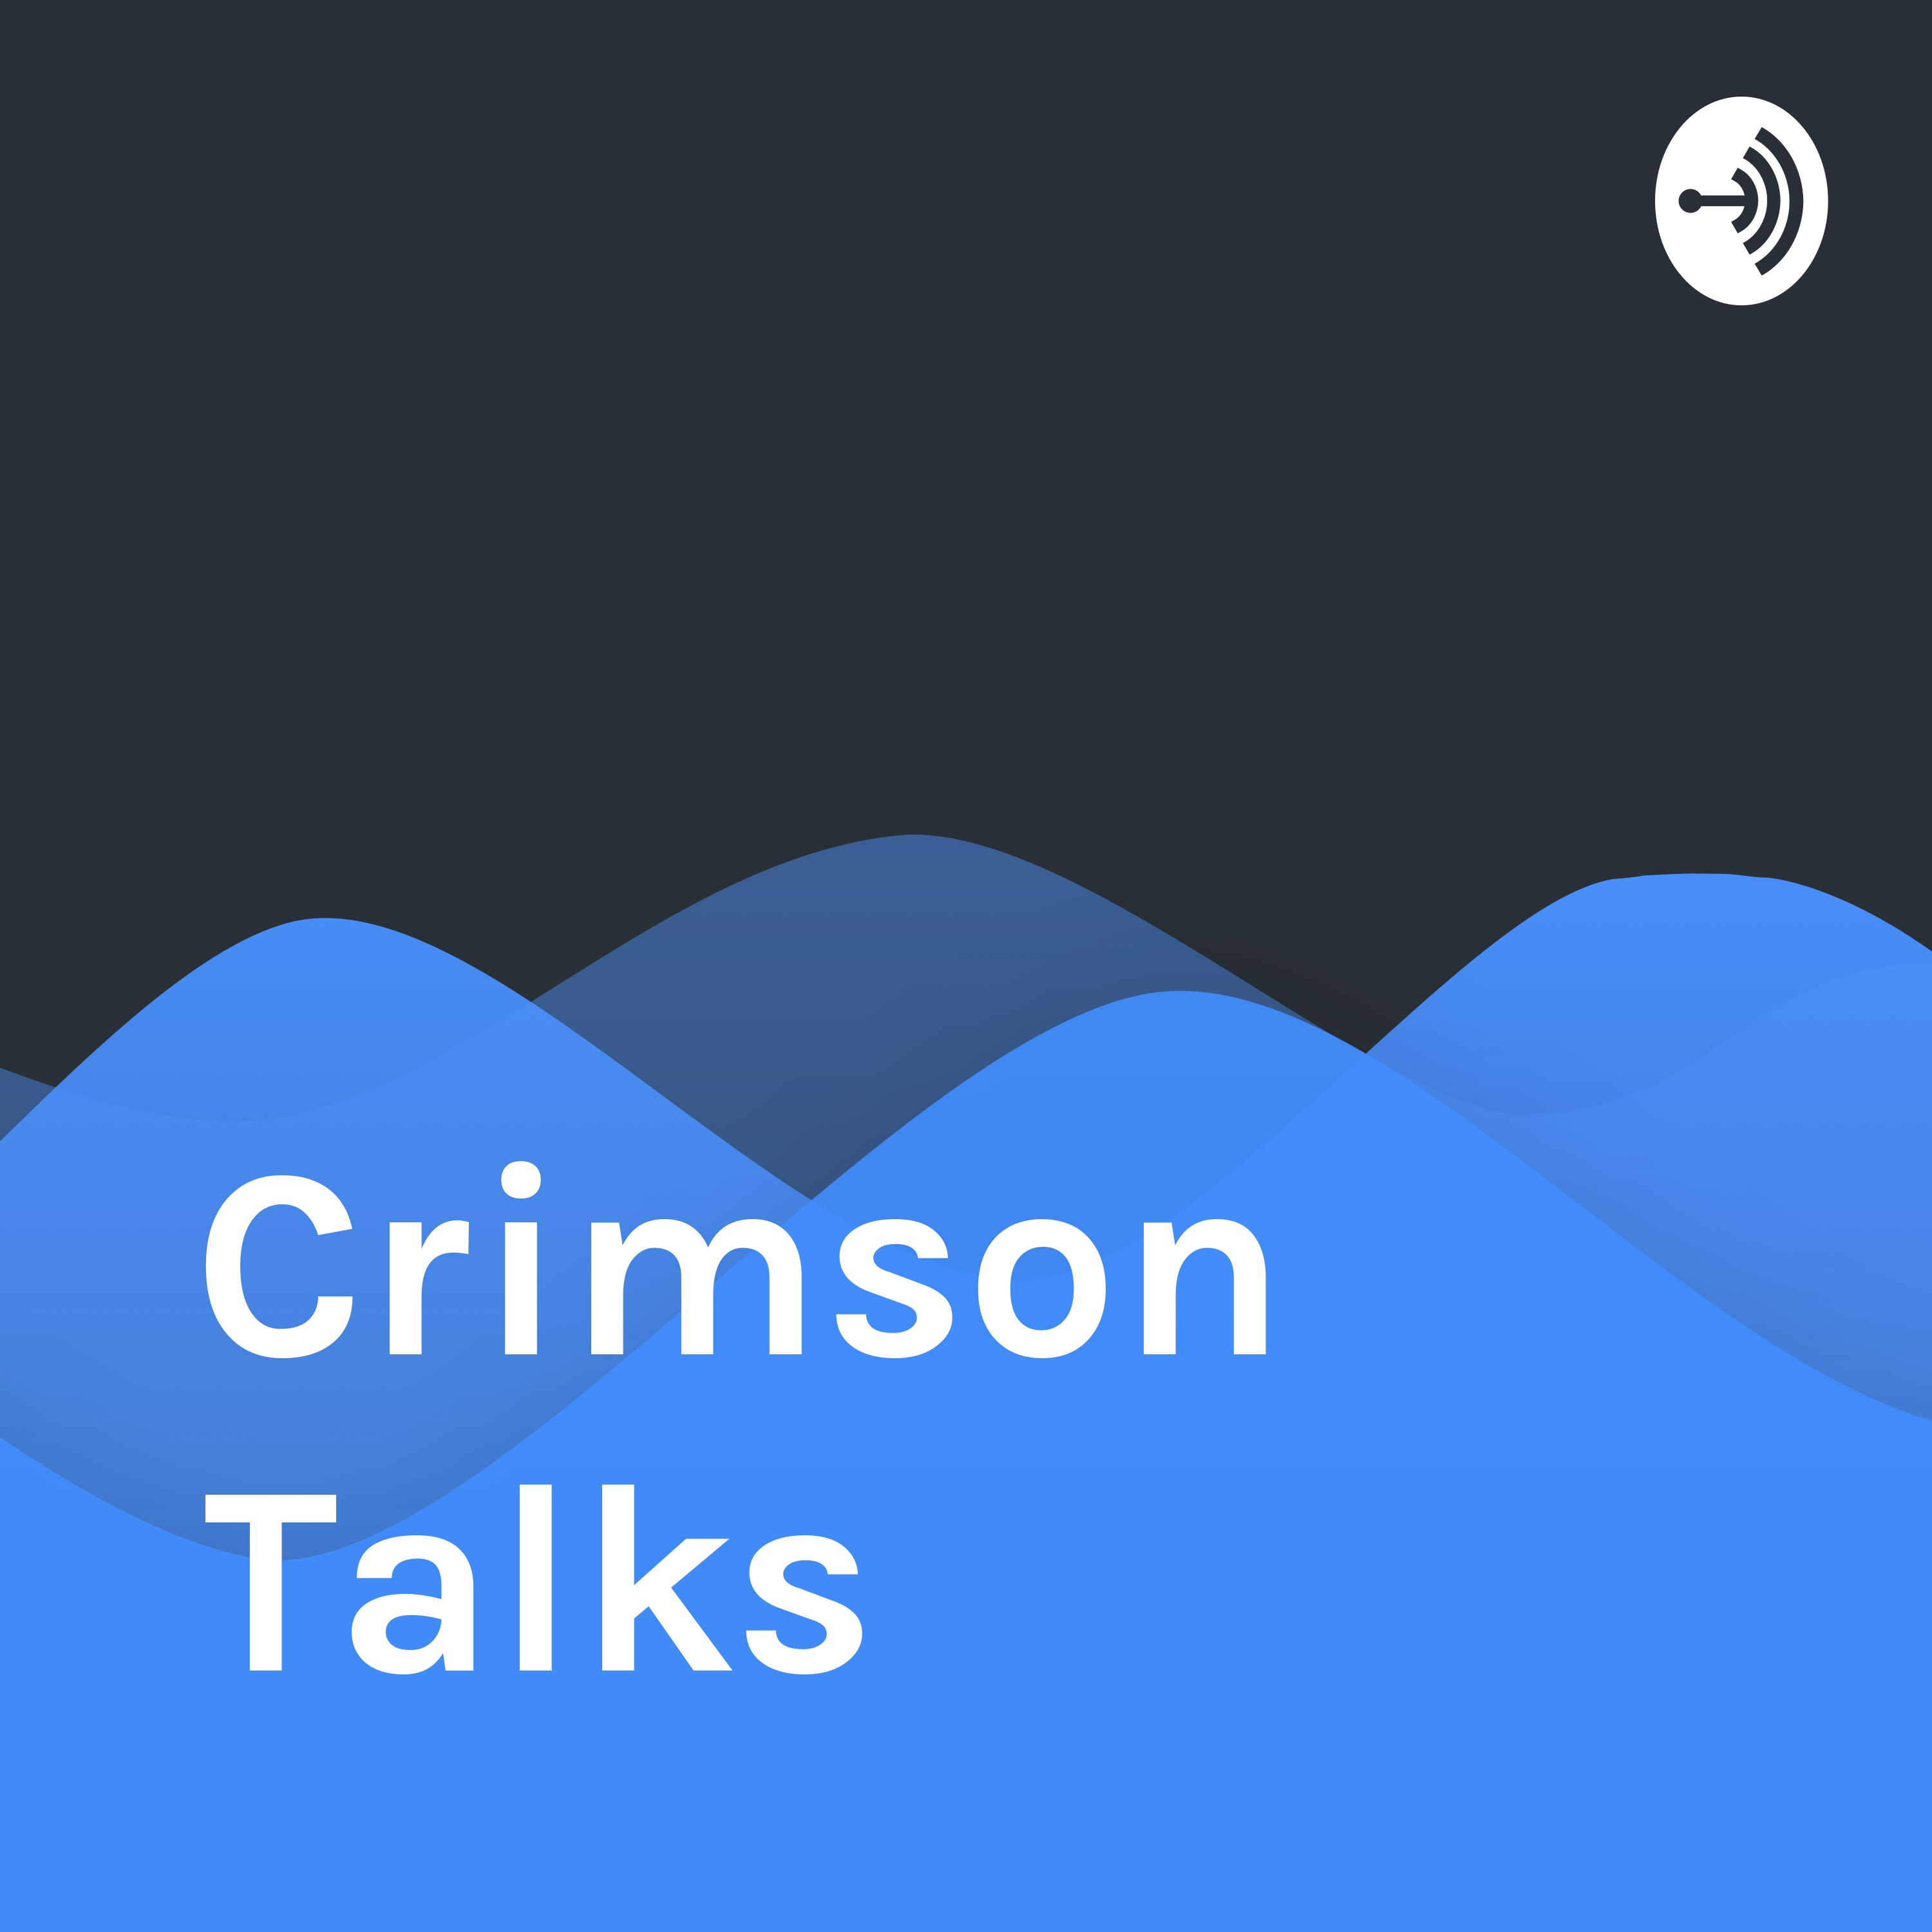 Crimson Talks